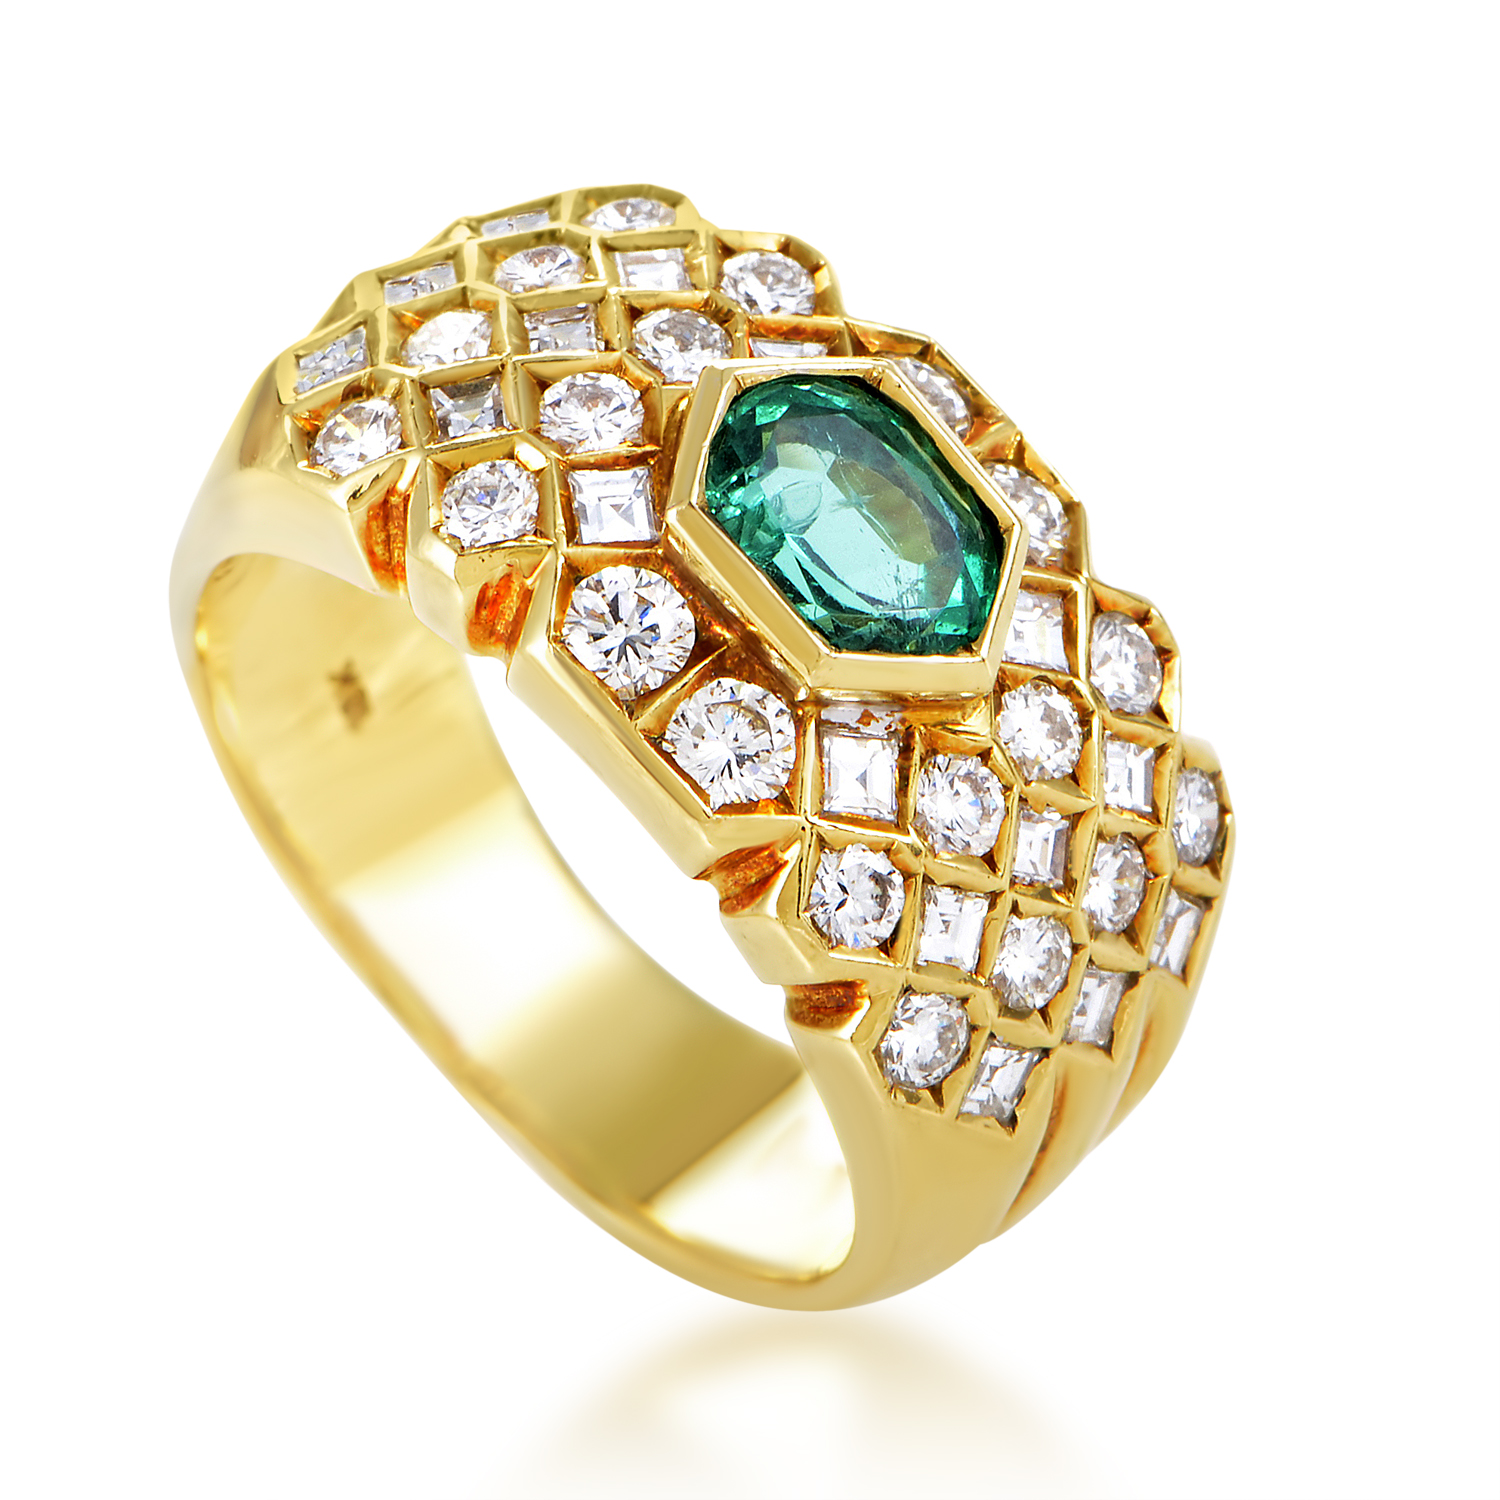 Fred of Paris Women's 18K Yellow Gold Diamond & Emerald Band Ring